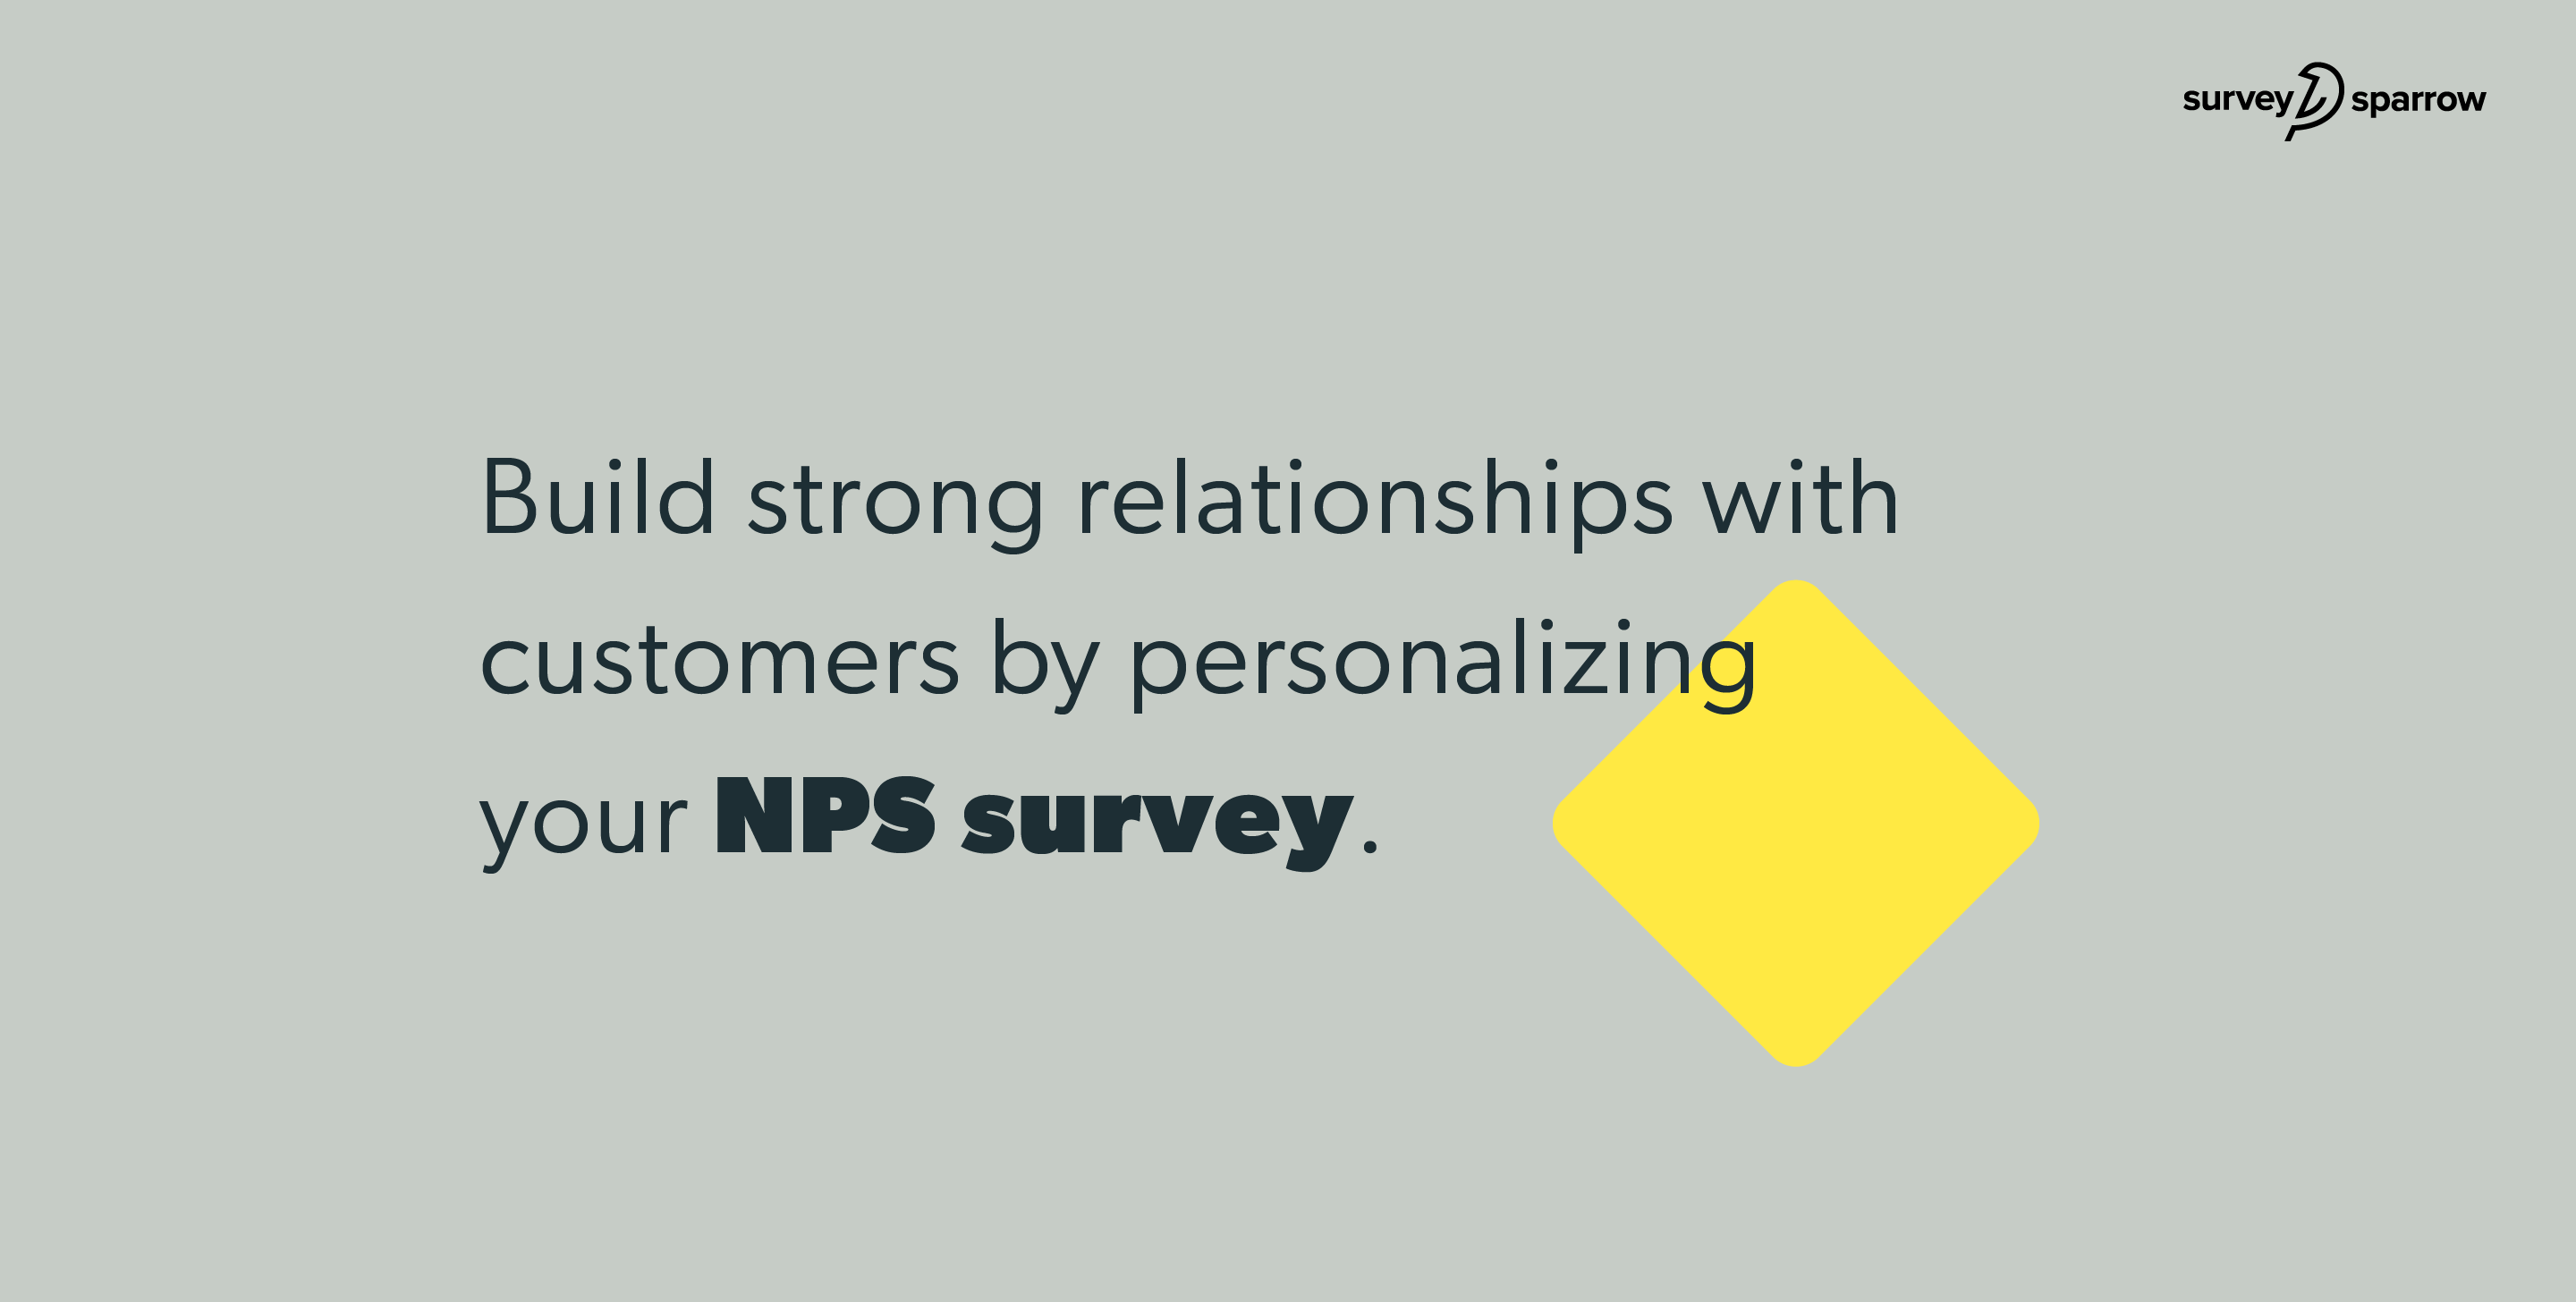 Build strong relationships with customers by personalizing your NPS survey.